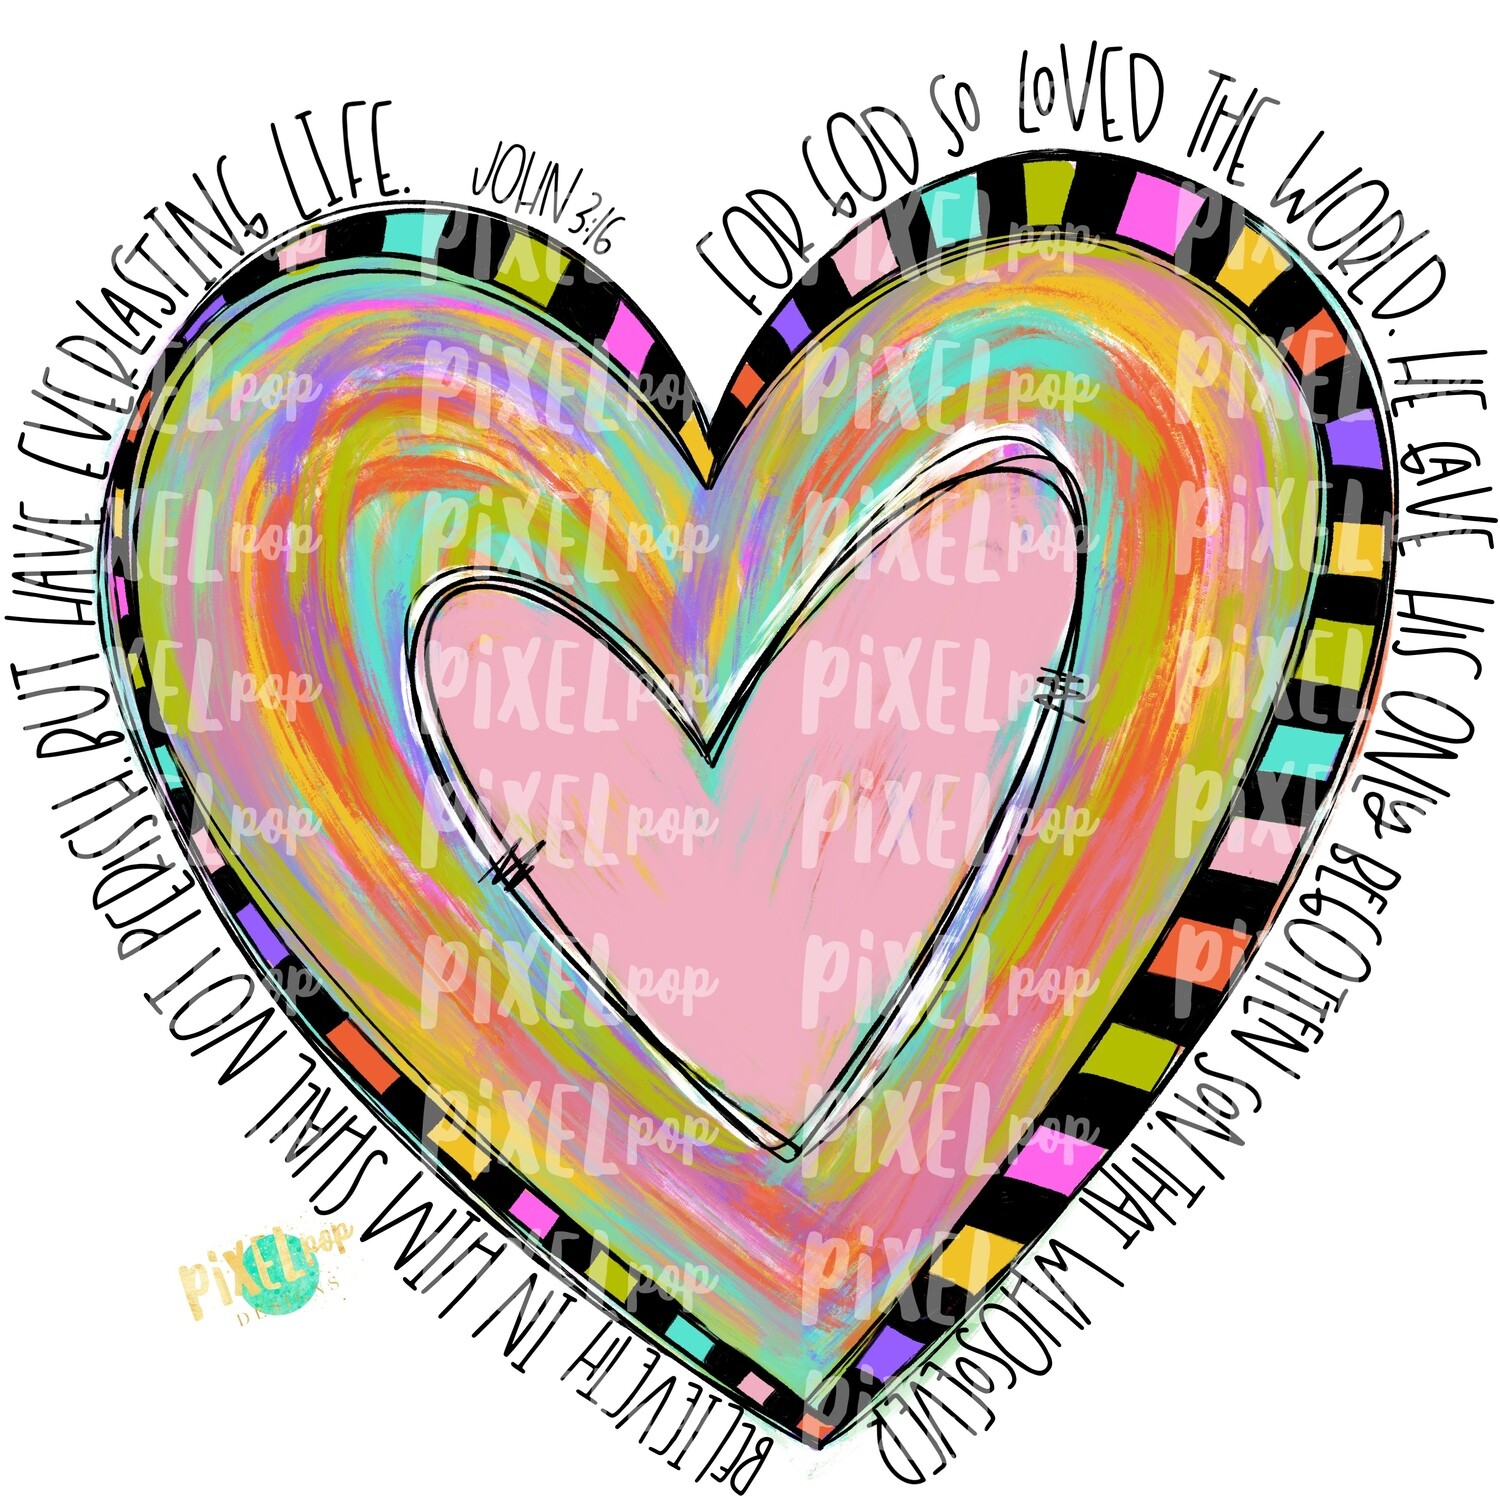 John 3:16 Painted Heart PNG | For God So Loved the World | Valentine Heart Design | Hand Painted Heart | Digital Design | Printable Art